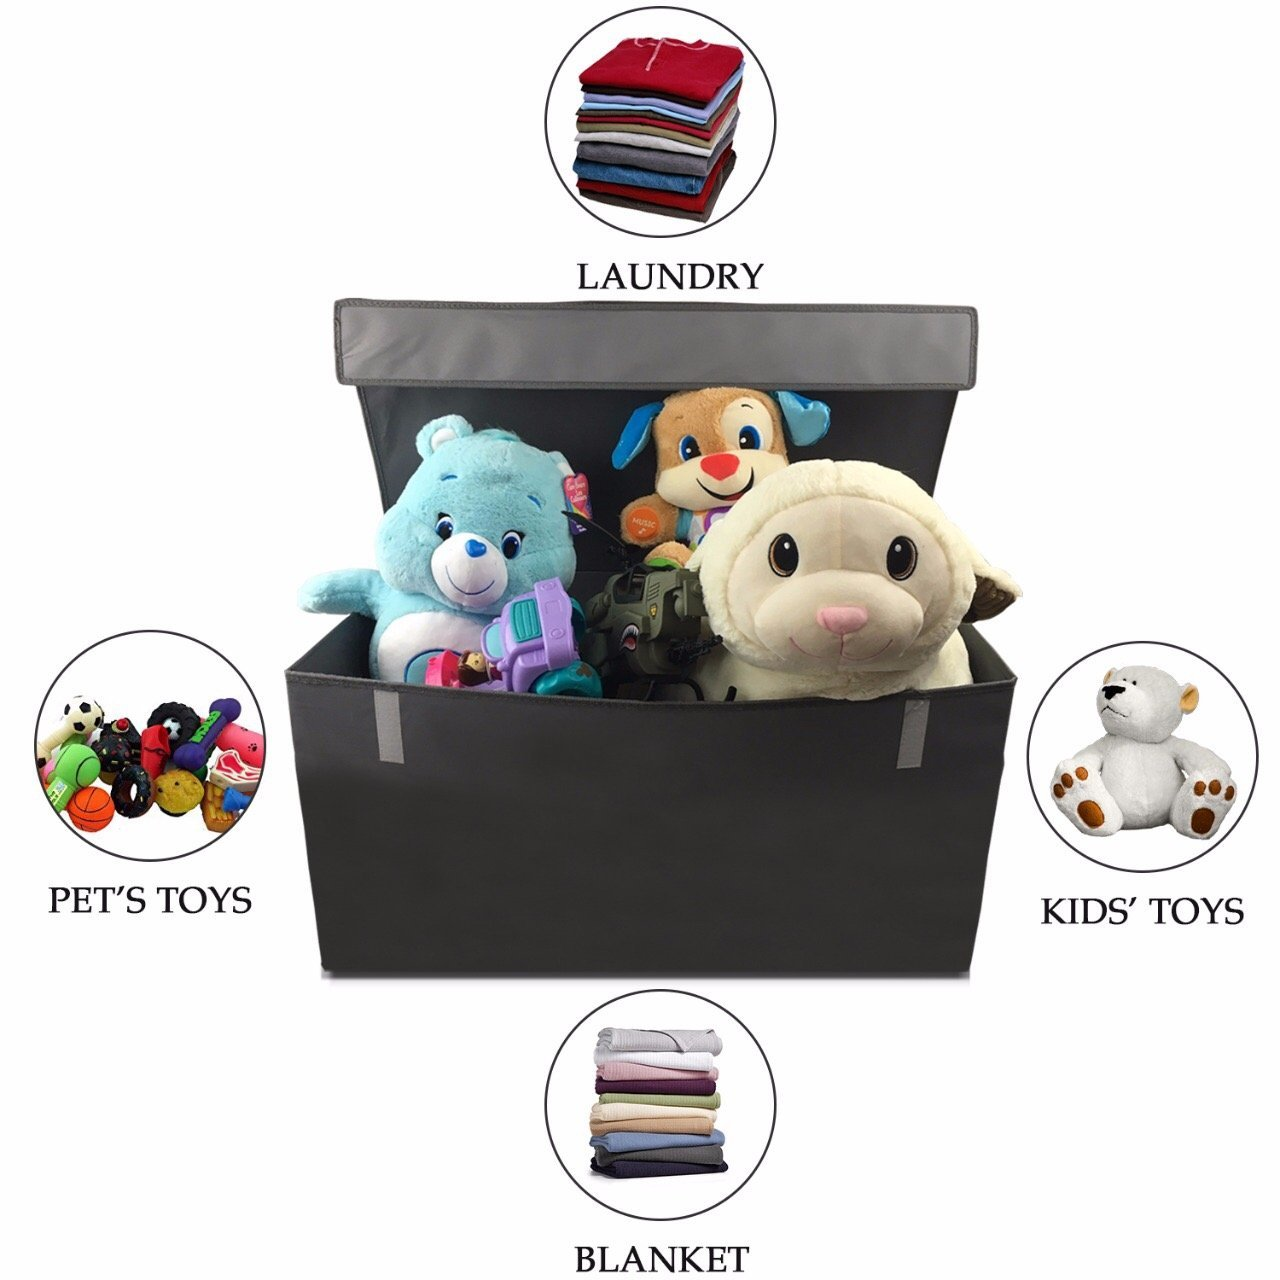 Collapsible Toy Chest for Kids (XX-Large) Storage Basket w/ Flip-Top Lid | Organizer Bin for Bedrooms, Closets, Child Nursery | Store Stuffed Animals, Games, Clothes, Shoes